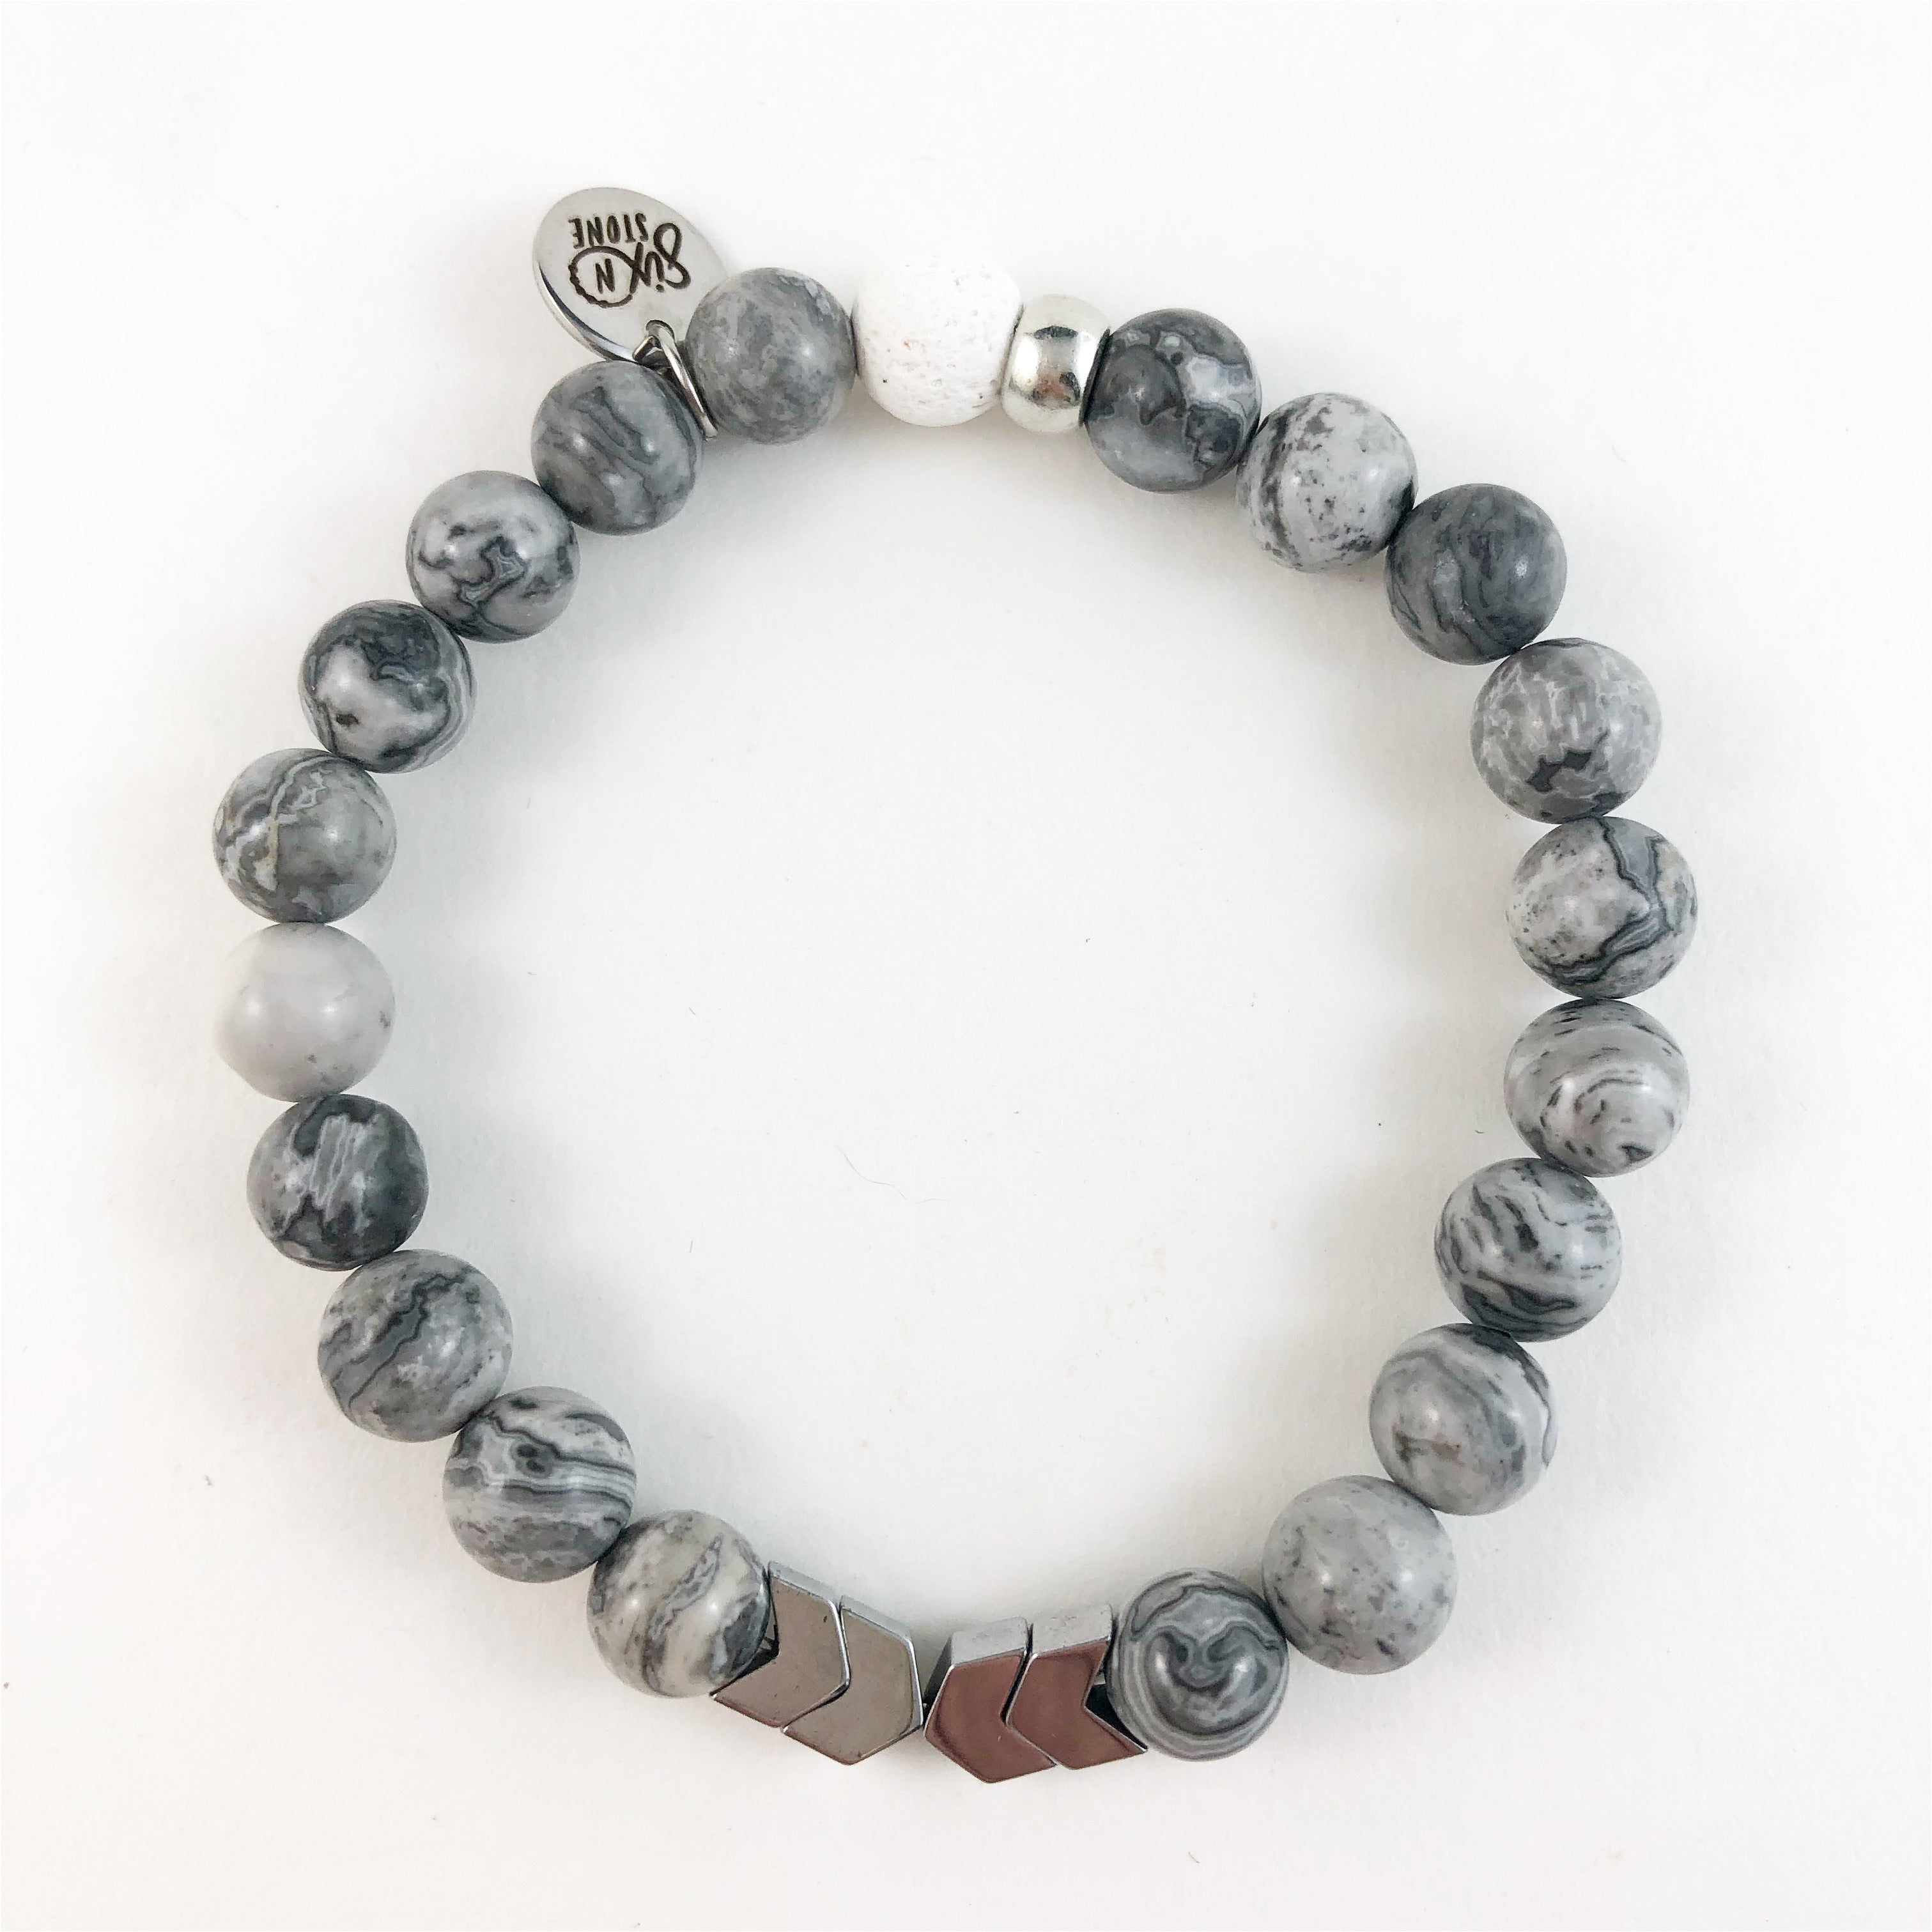 Marbled Jasper Stone & Lava Bracelet with Silver Chevron